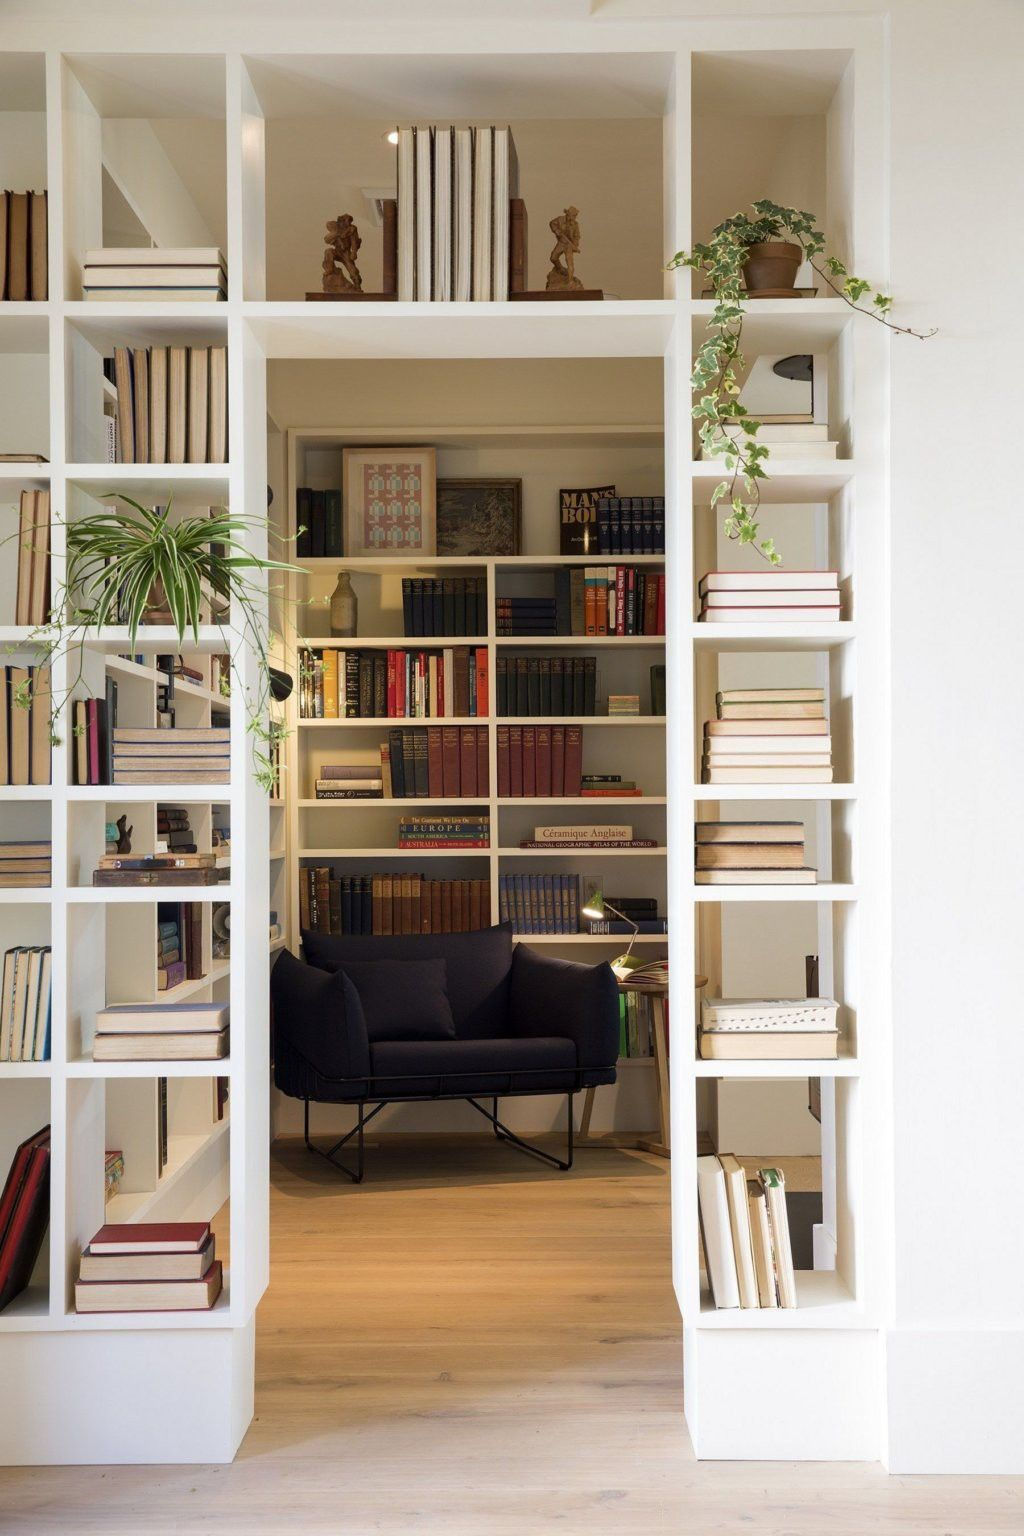 Interior Design Library Room: Beautiful And Creative Partition Wall Design Ideas To See